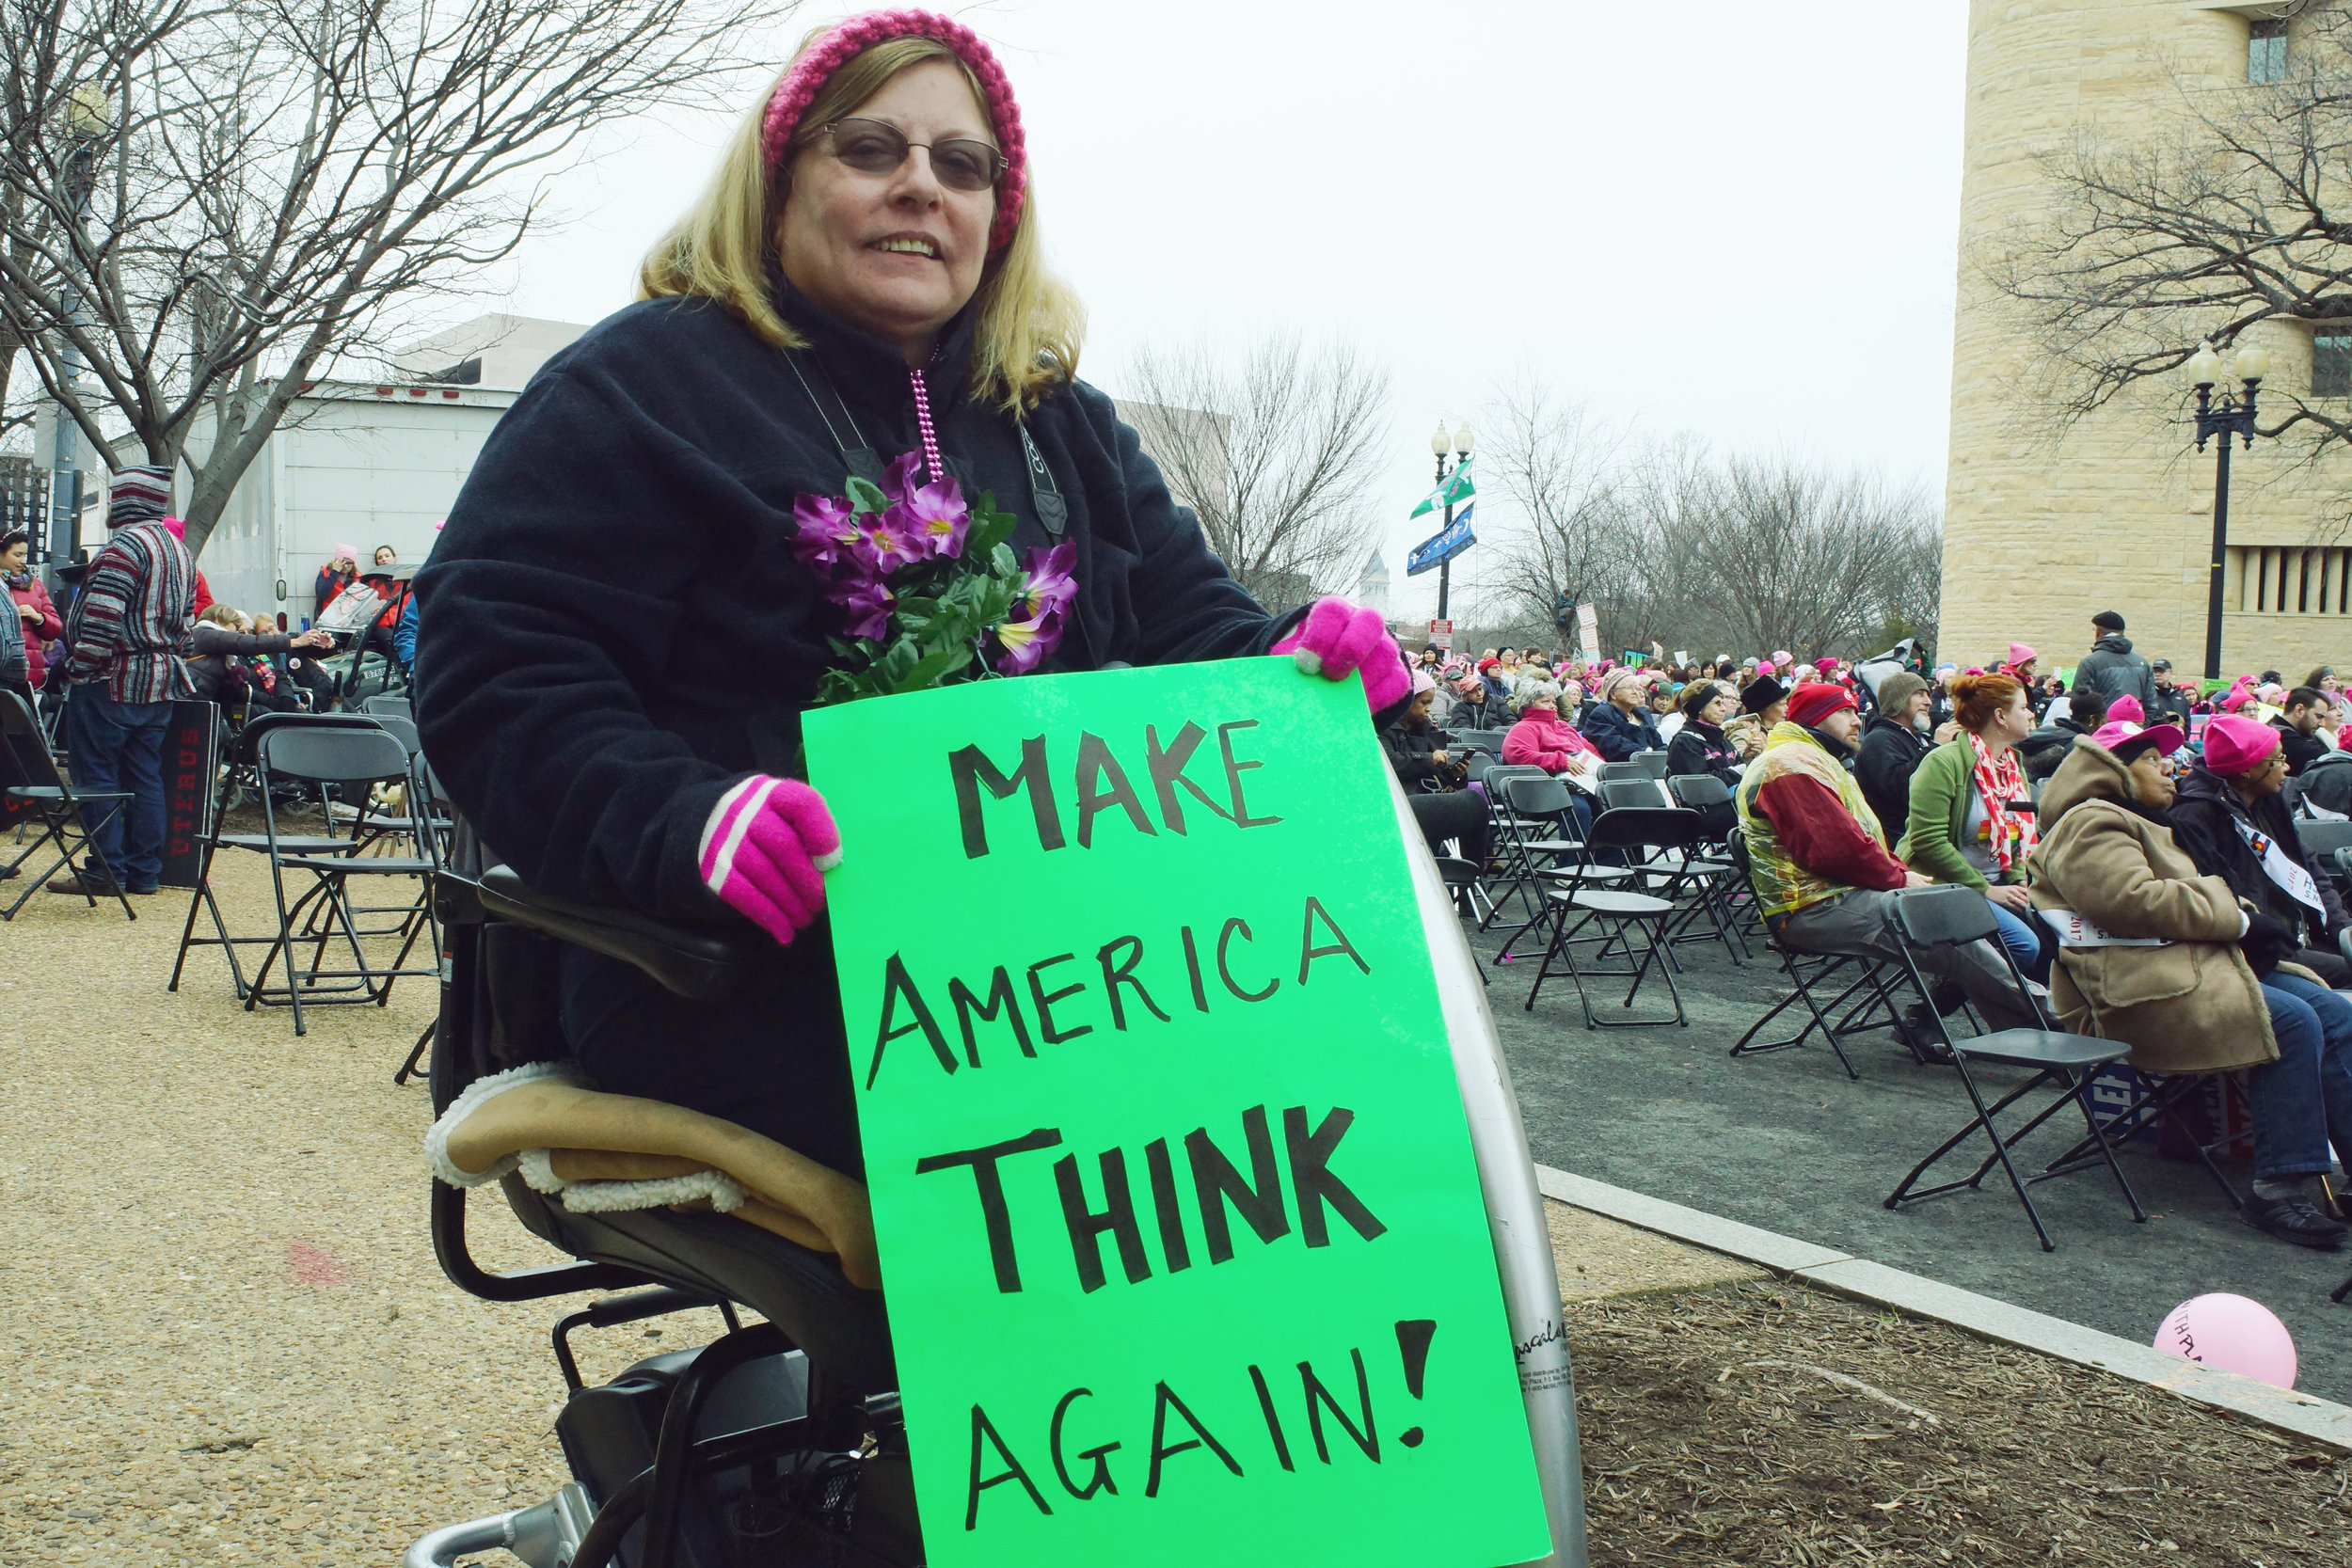 """[Image description: Anne Marie, a white woman with blonde hair and a pink knitted headband sits in a mobility scooter, smiling at the camera. She holds a green sign with black writing that says """"Make America Think Again!"""" and has a bouquet of flowers pinned to her jacket.]"""